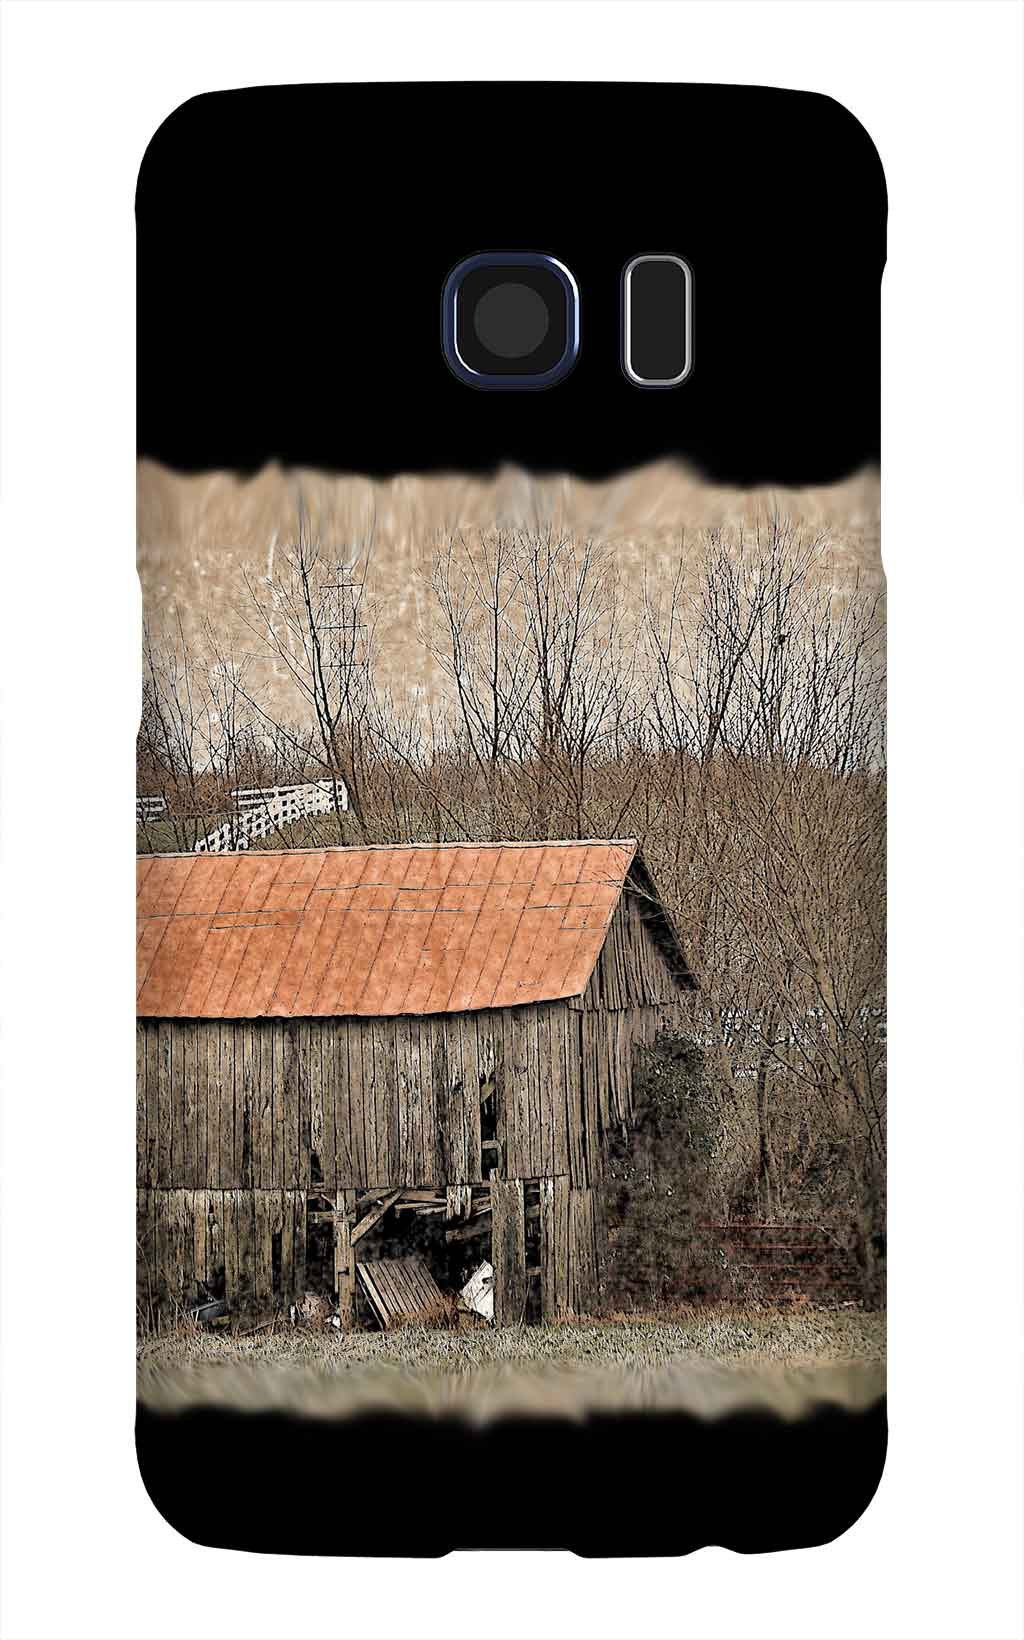 Product, Cellphone Case: Hot Tin Roof - Weathered barn with red tin roof and white picket fence